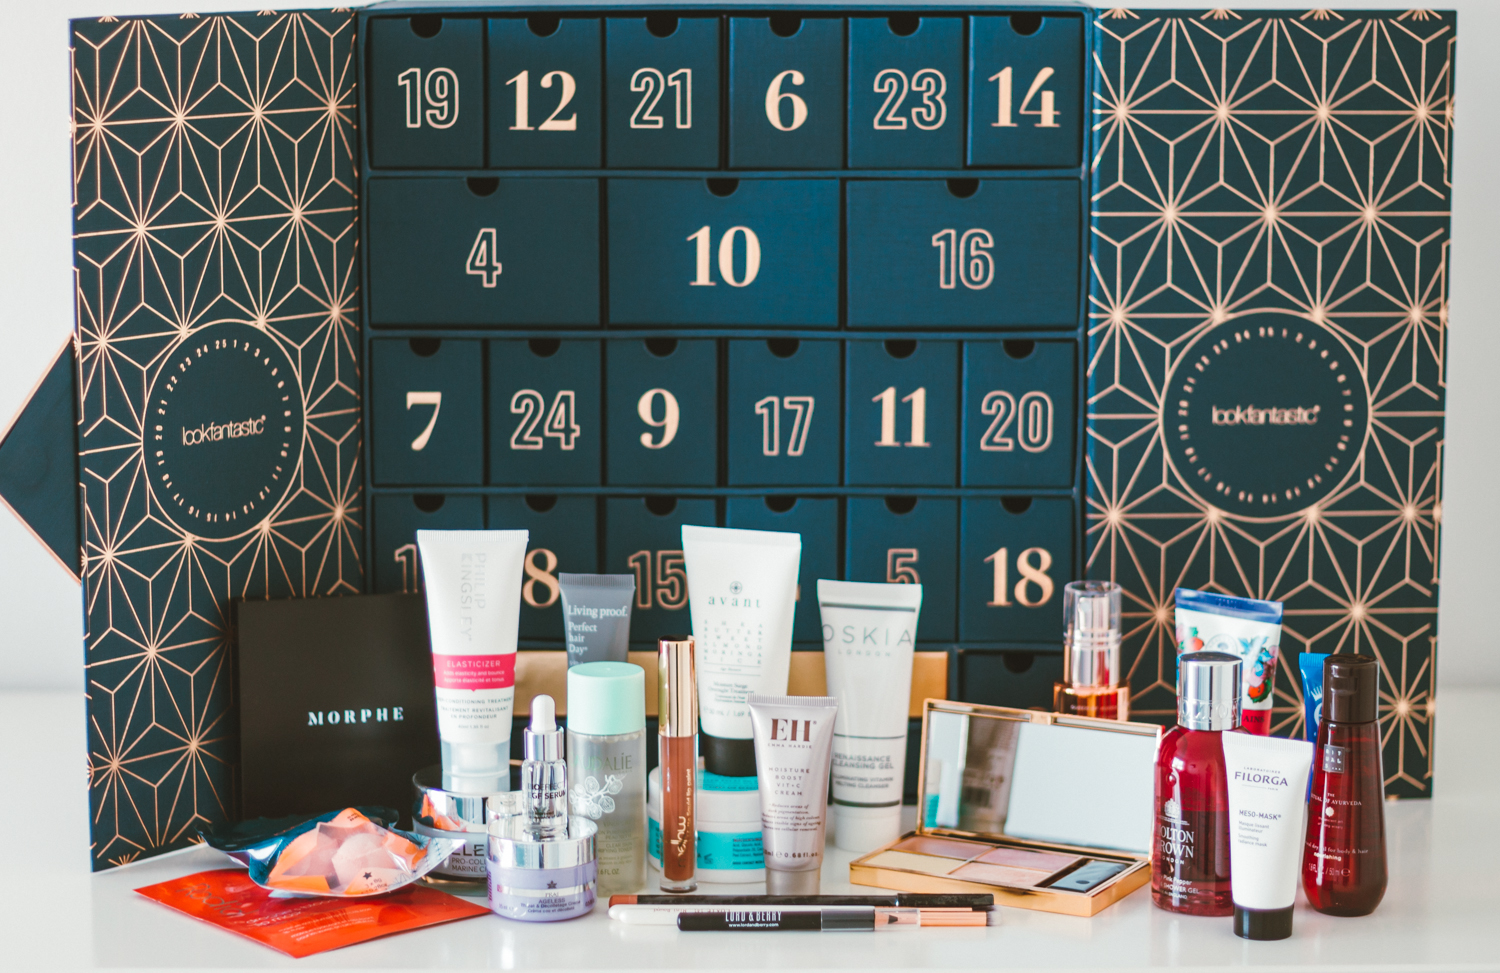 LookFantastic Advent Calendar 2019